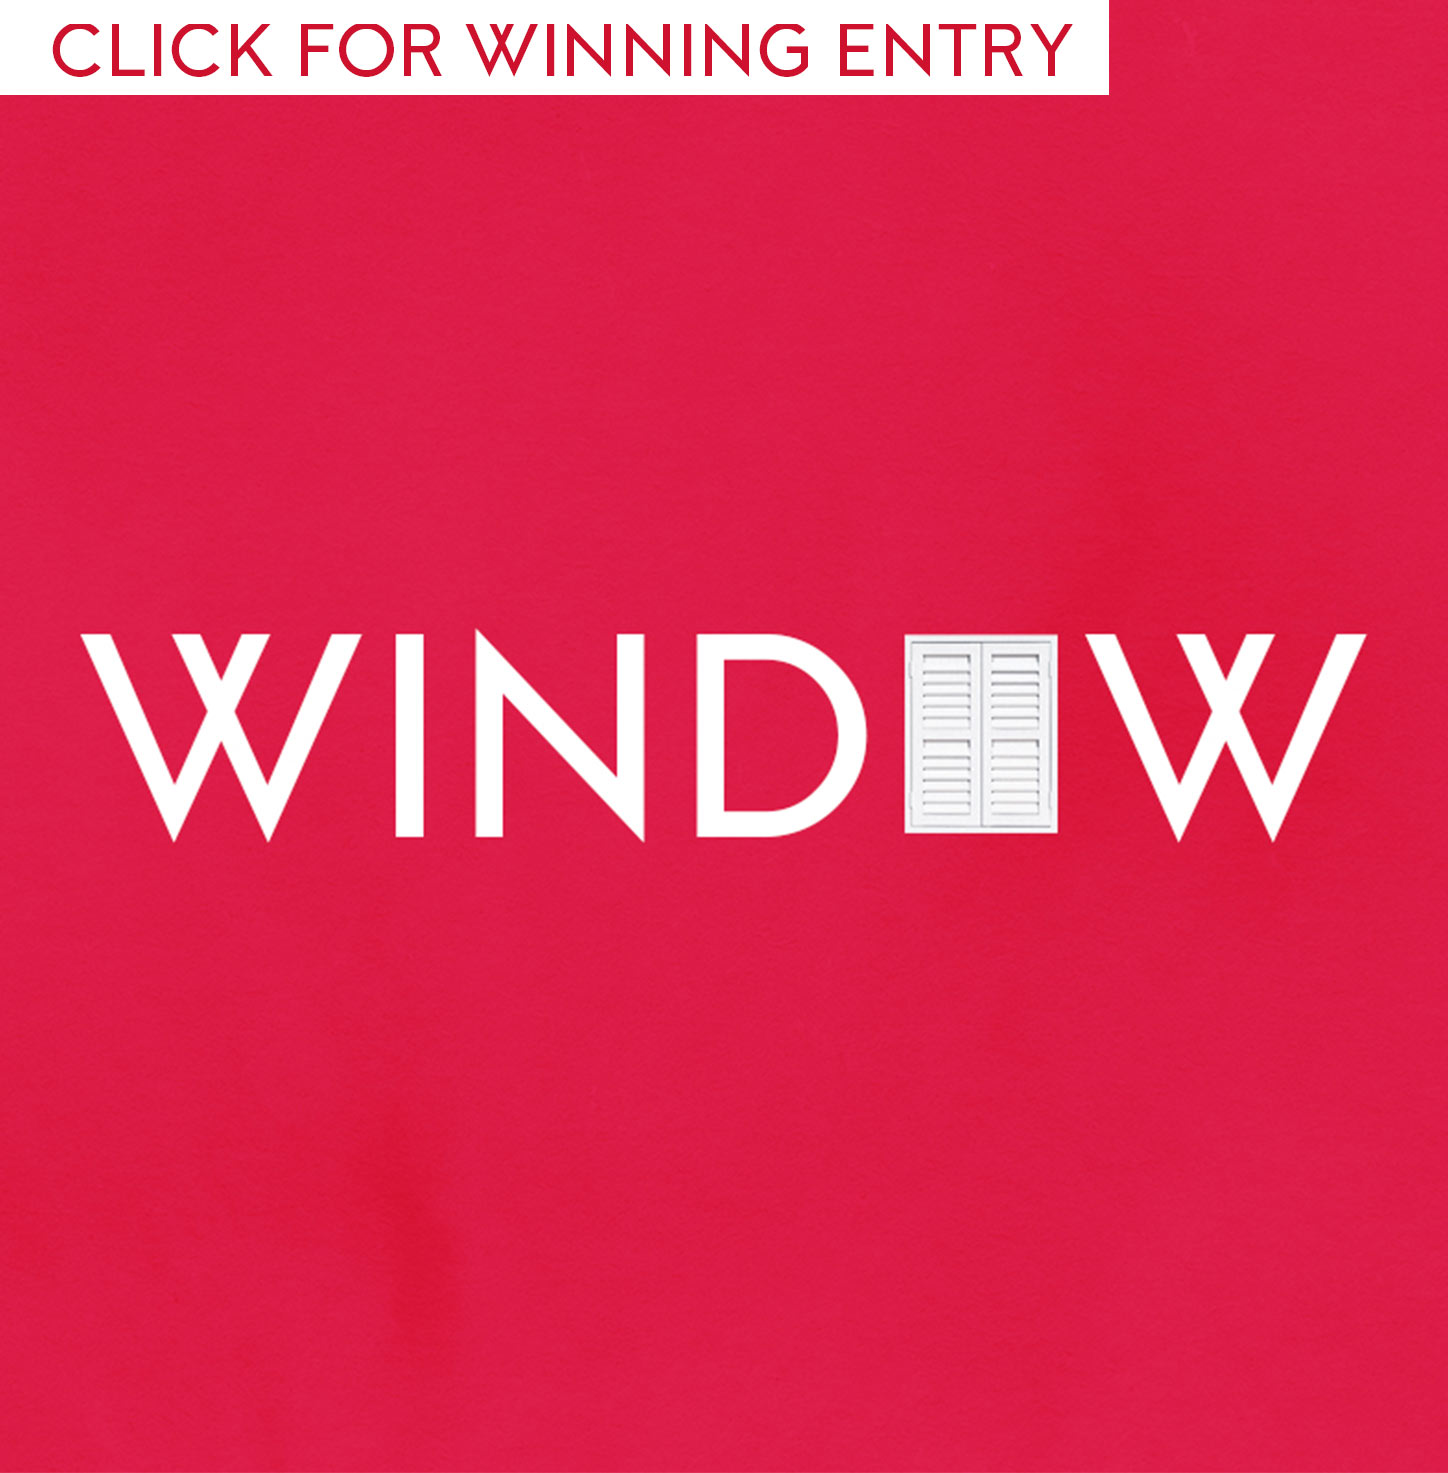 Winner of Arts Illustrated's weekly contest for Illustrators on the theme of 'Window'.